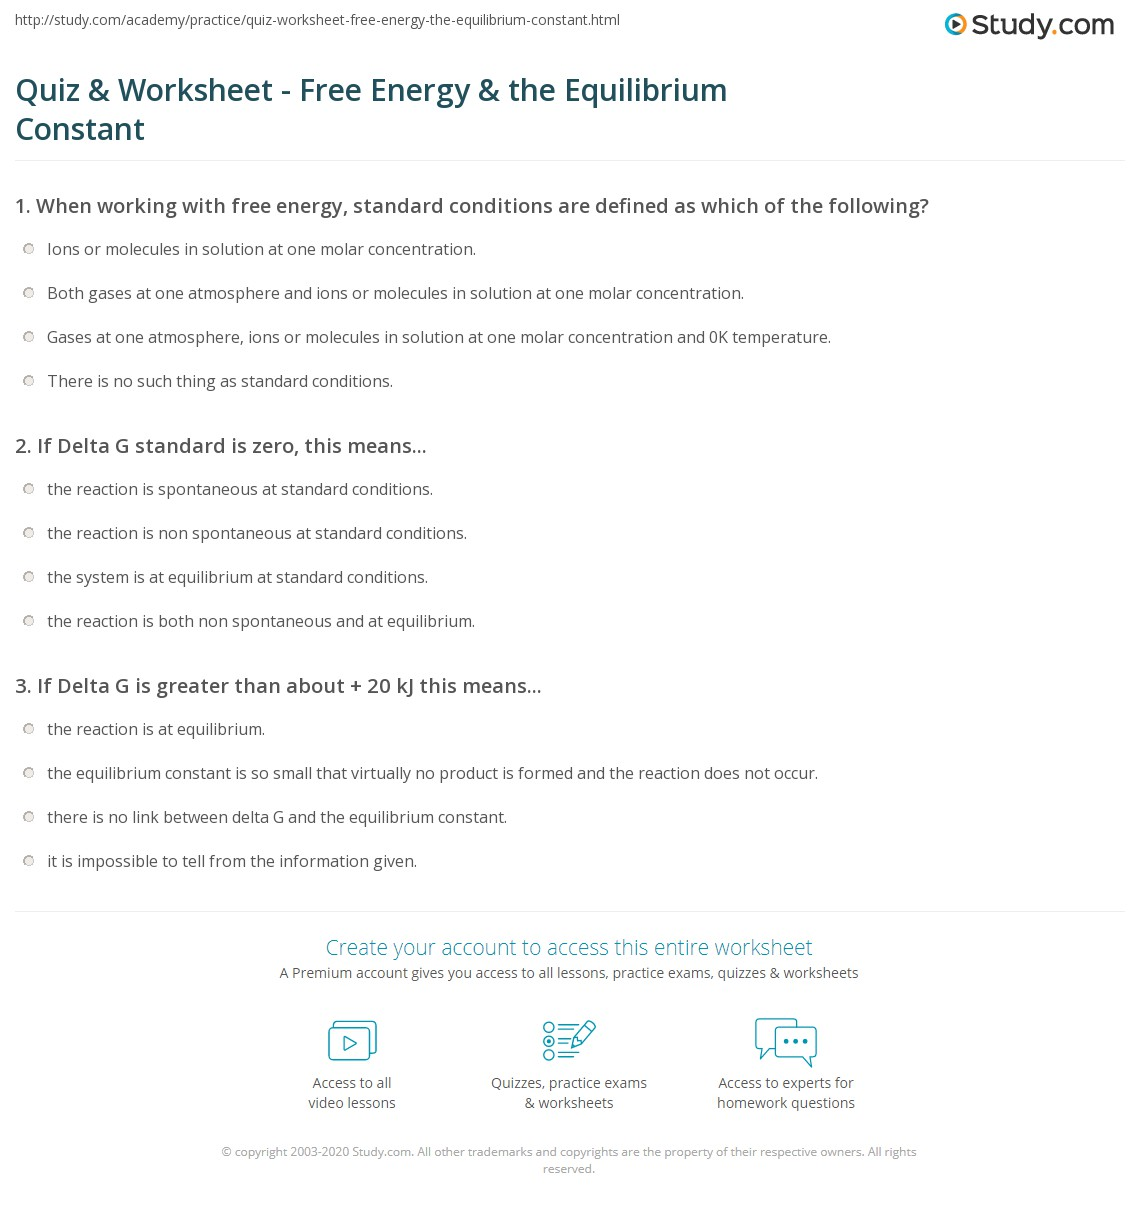 chemistry and pharmacy relationship quizzes